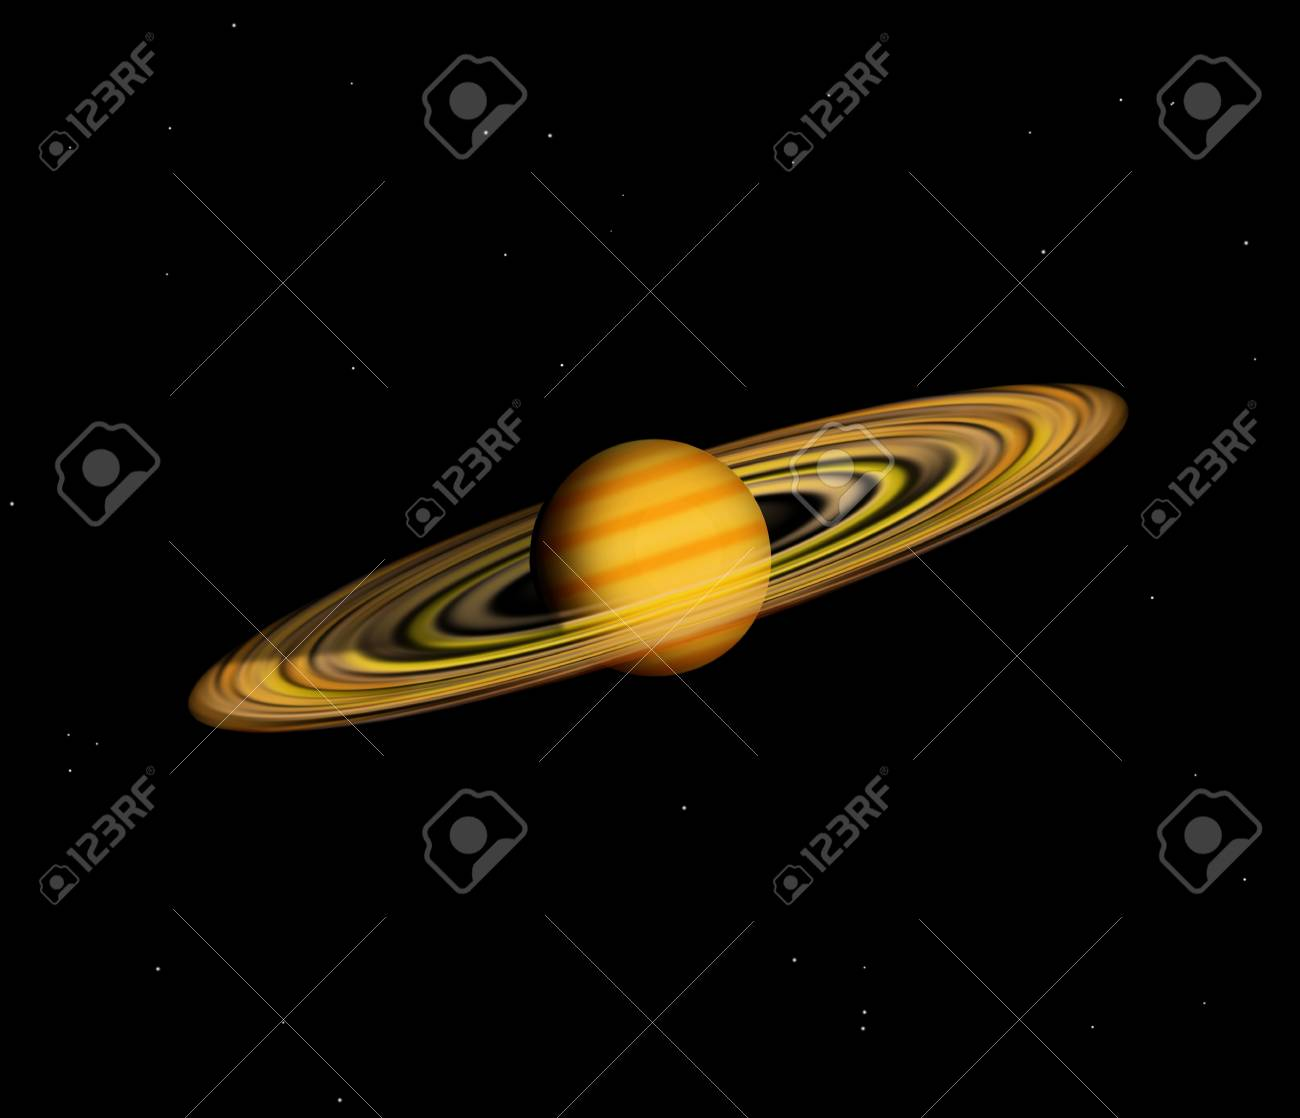 planet with rings on a speace background Stock Photo - 9169975